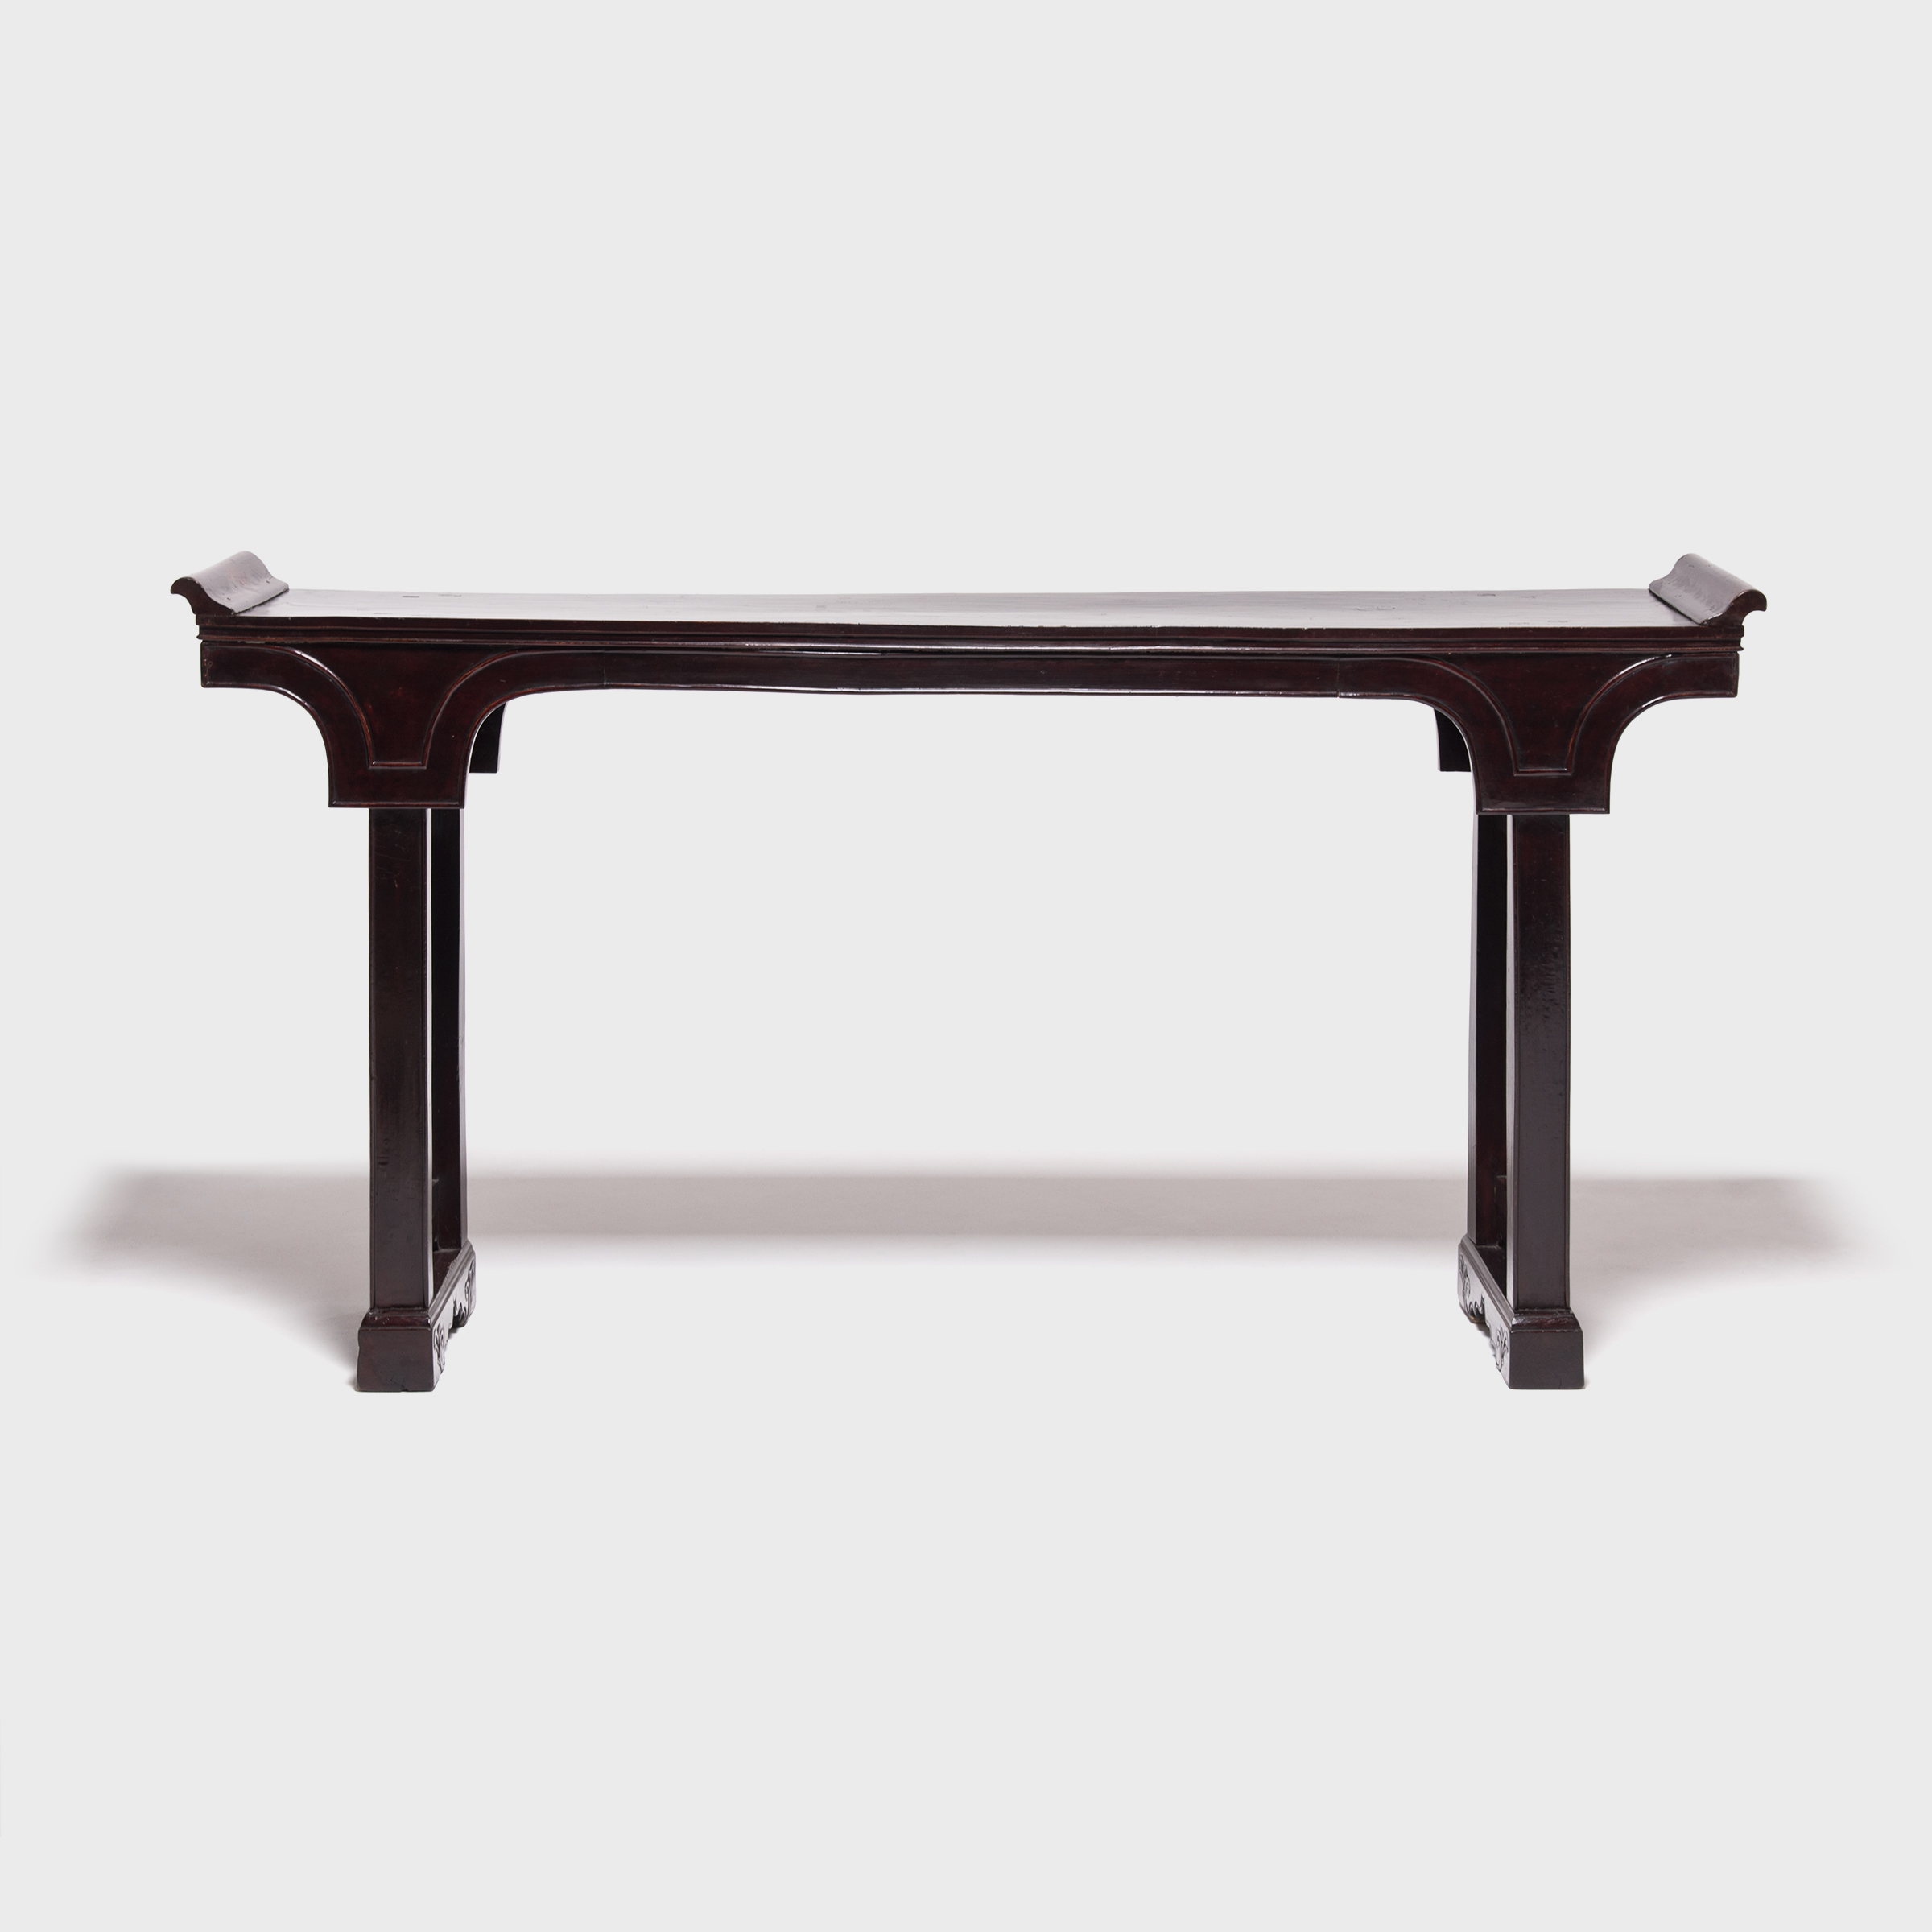 Chinese Tables And Antique Chinese Tables | Pagoda Red For Era Limestone Console Tables (Gallery 15 of 20)